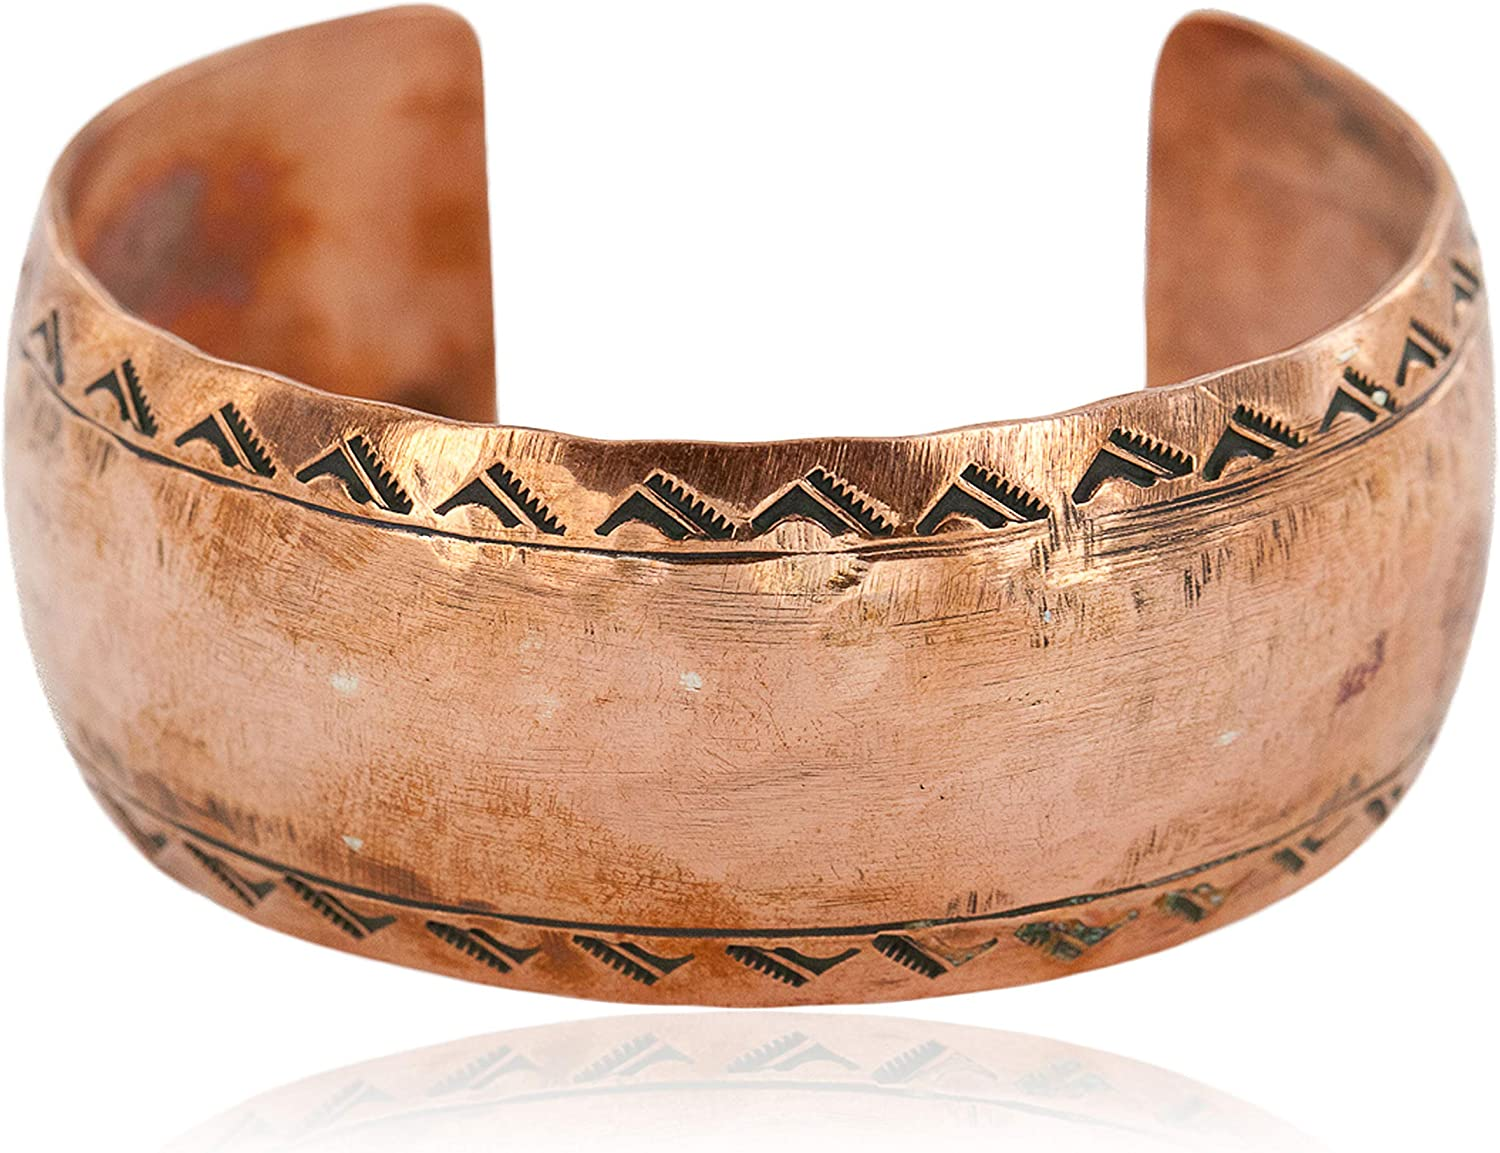 $150Tag Hammered Mountain Certified Navajo Copper Native American Bracelet 12868-5 Made by Loma Siiva